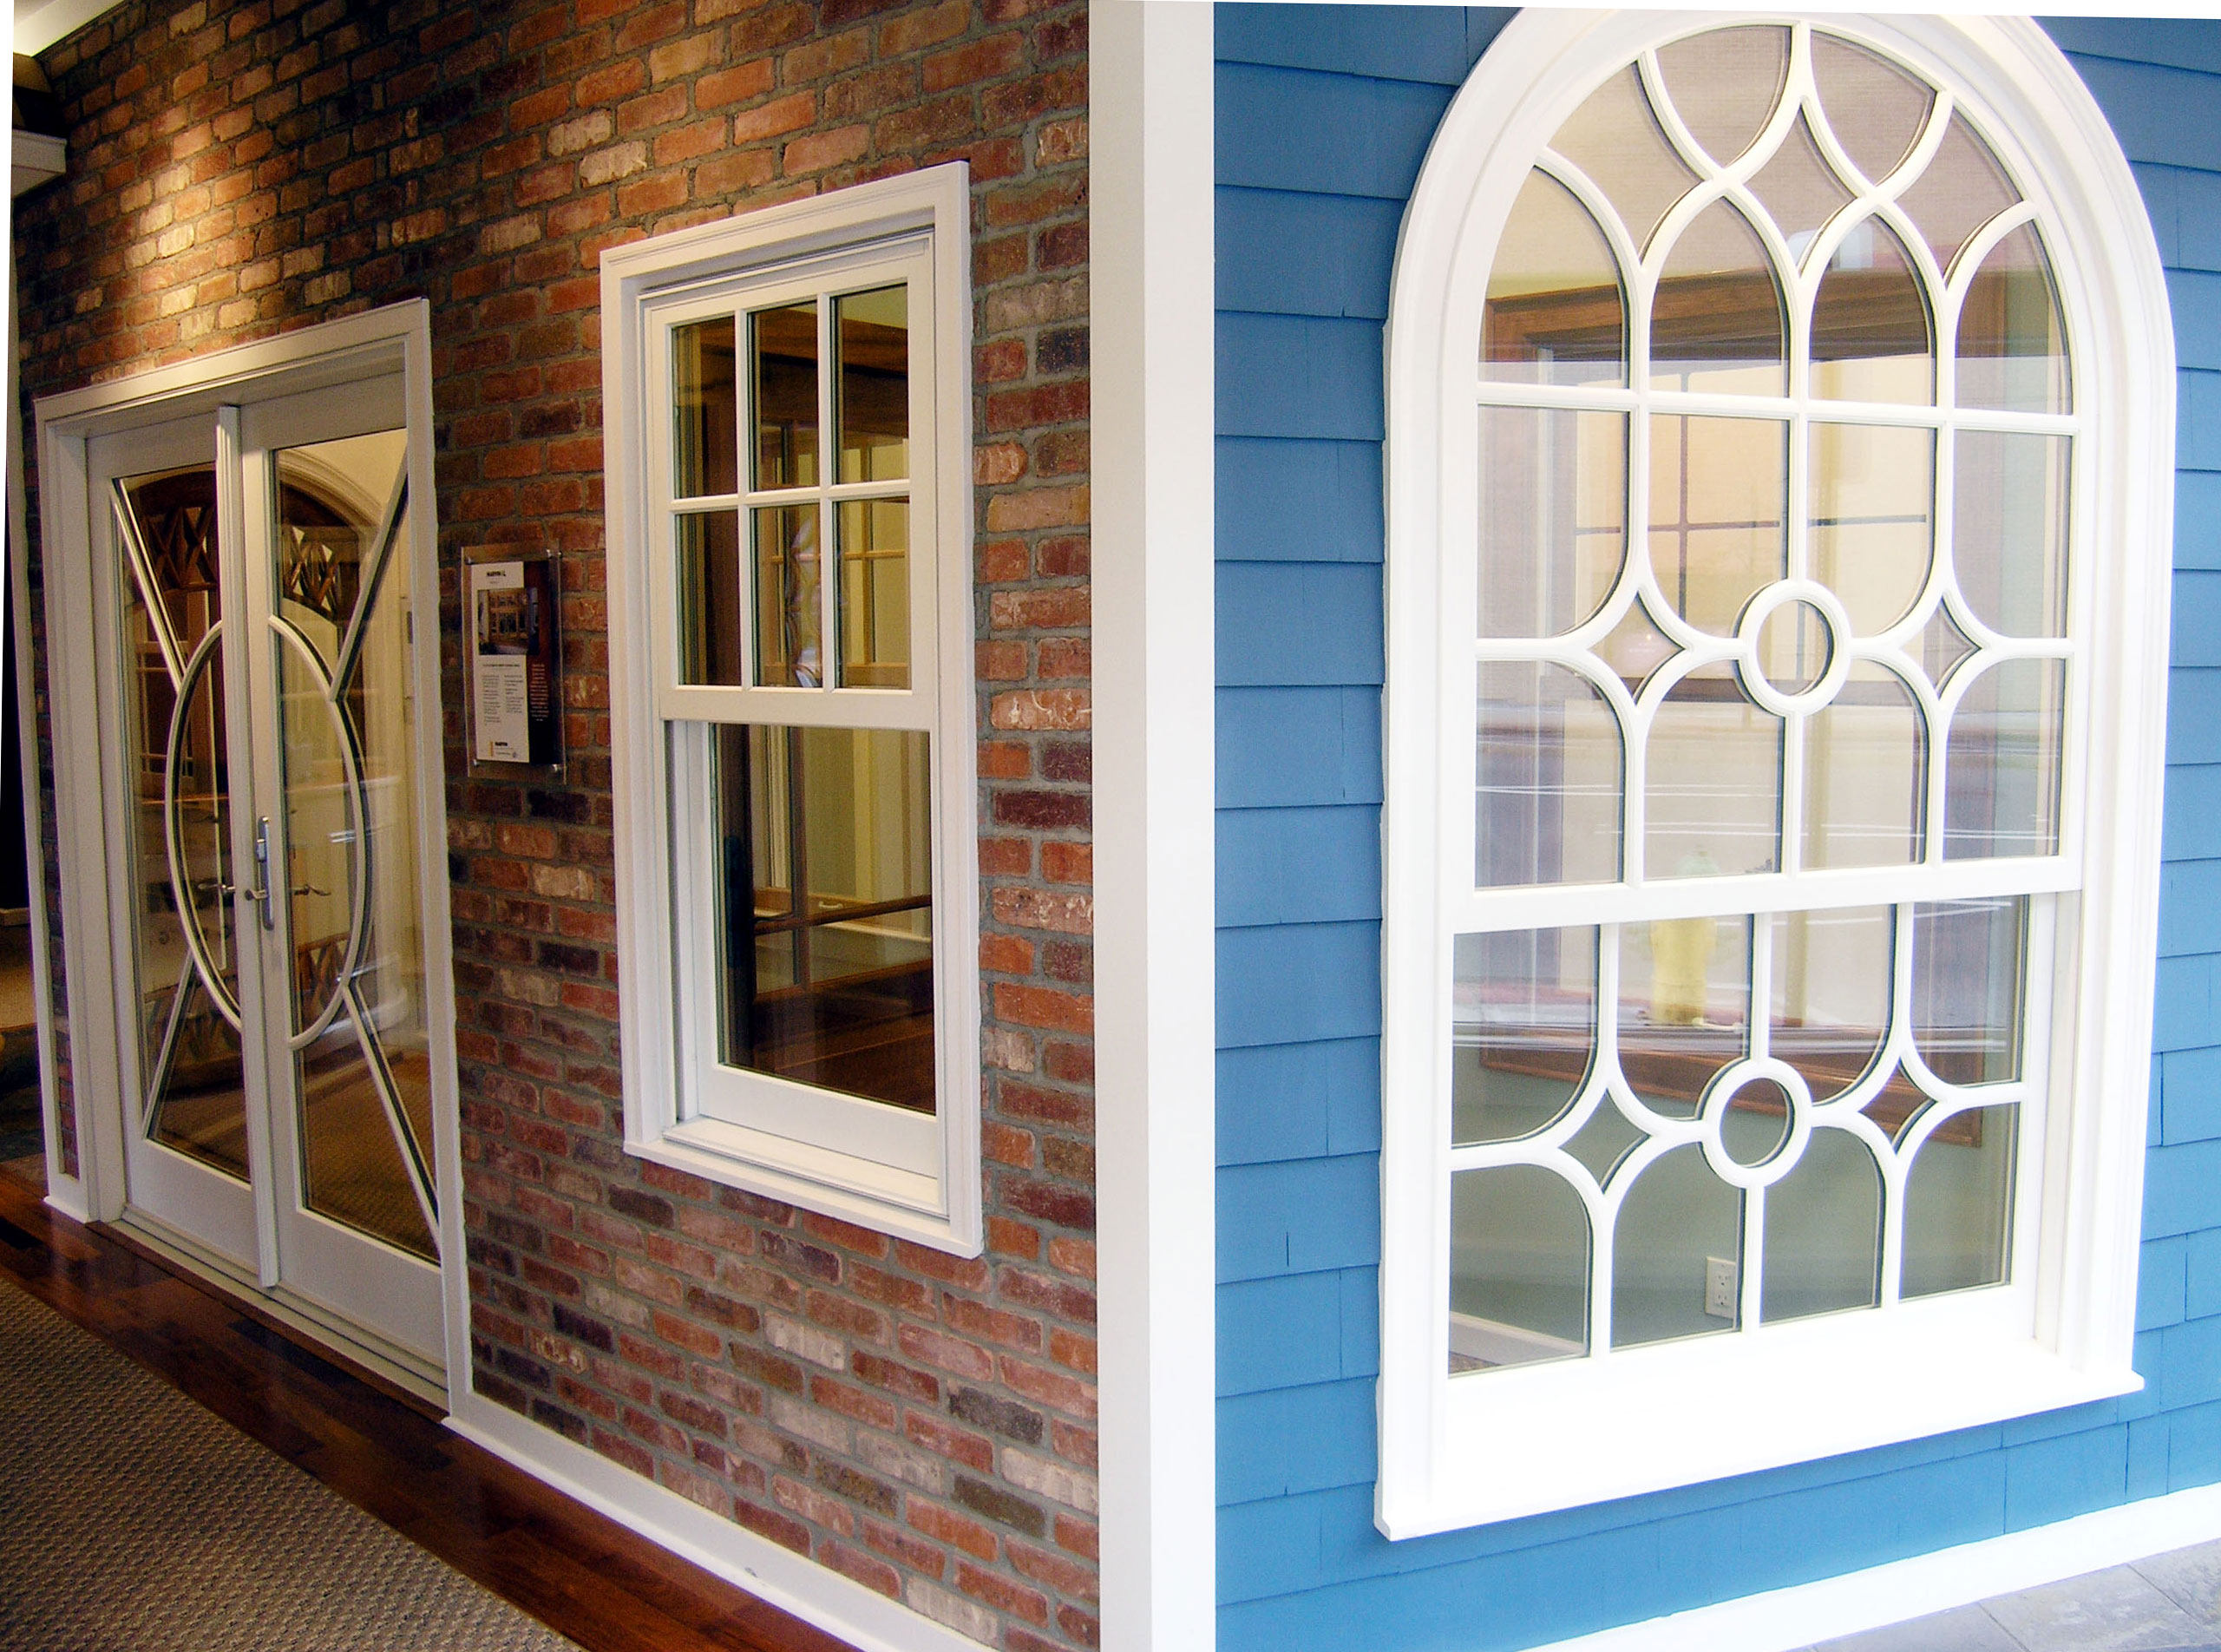 About us elmsford ny authentic window design for Home window design pictures